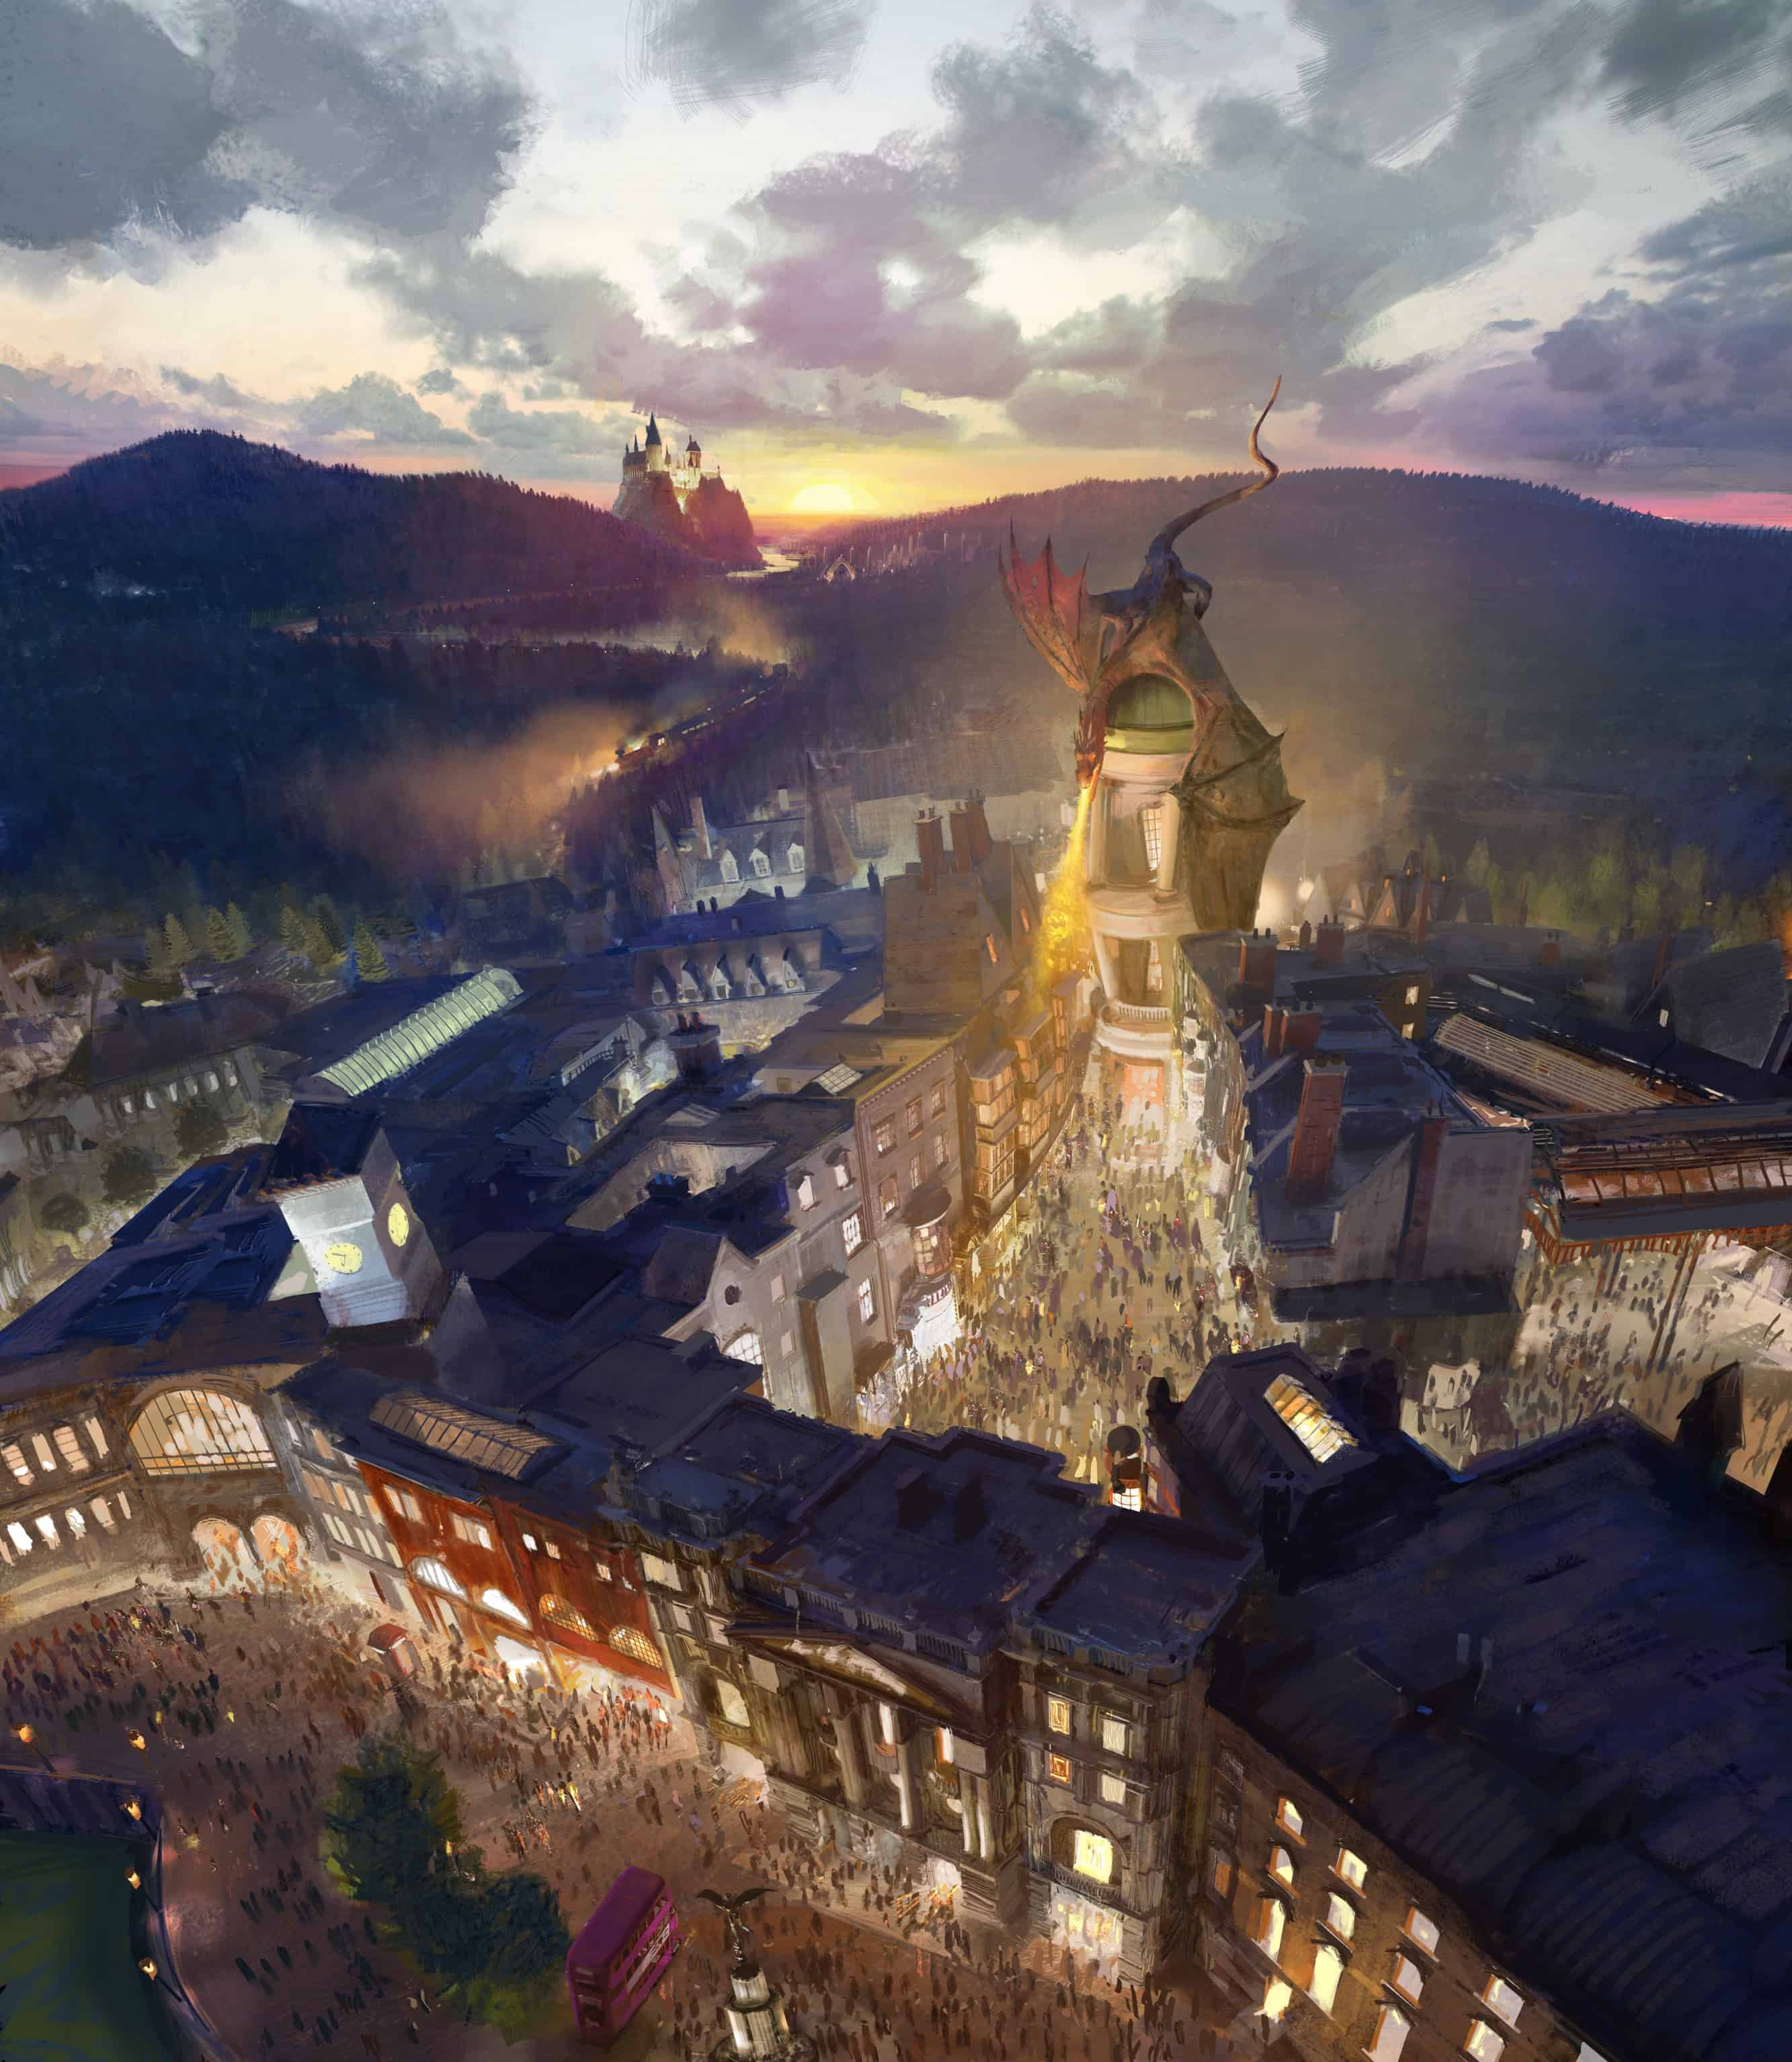 The Wizarding World of Harry Potter – Diagon Alley – Coming Soon!